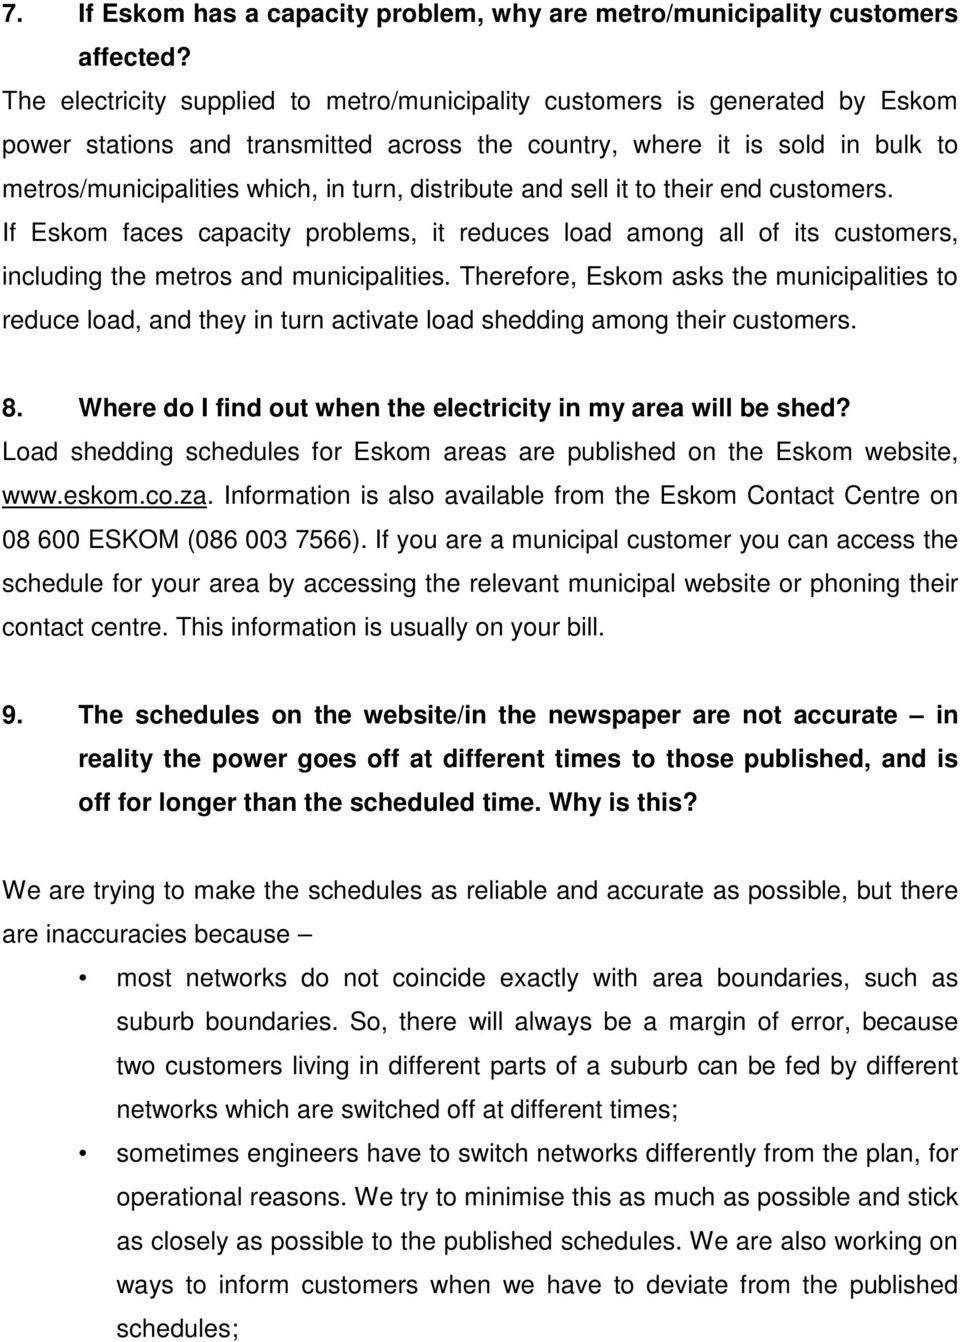 distribute and sell it to their end customers. If Eskom faces capacity problems, it reduces load among all of its customers, including the metros and municipalities.